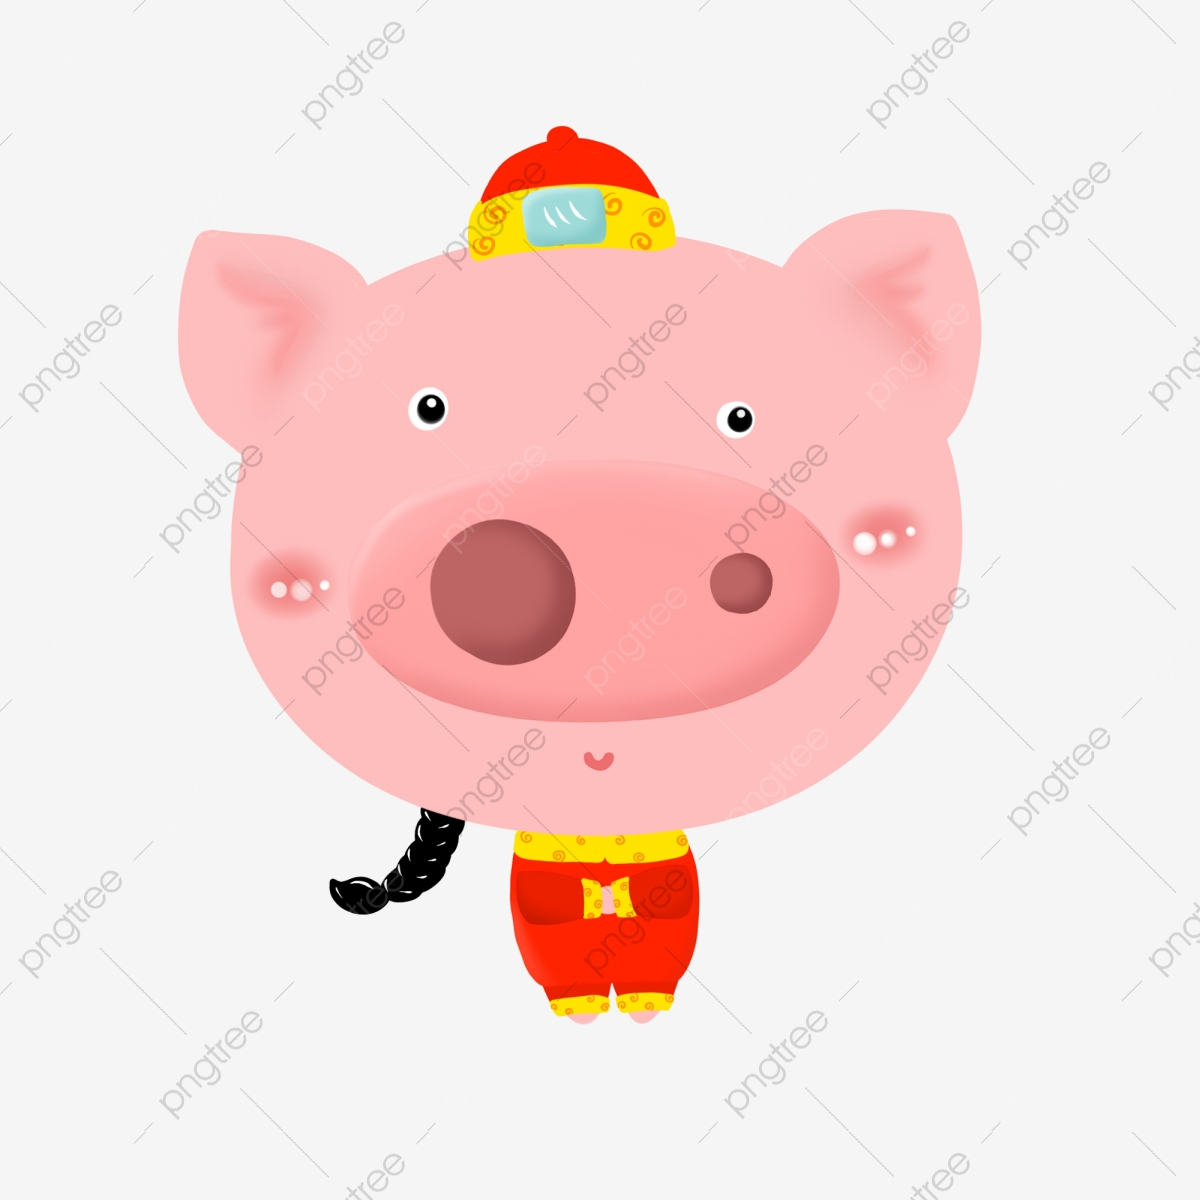 Red Hat Clothes Tang Suit, Arch Hand, Whole Body, Big Nose PNG.